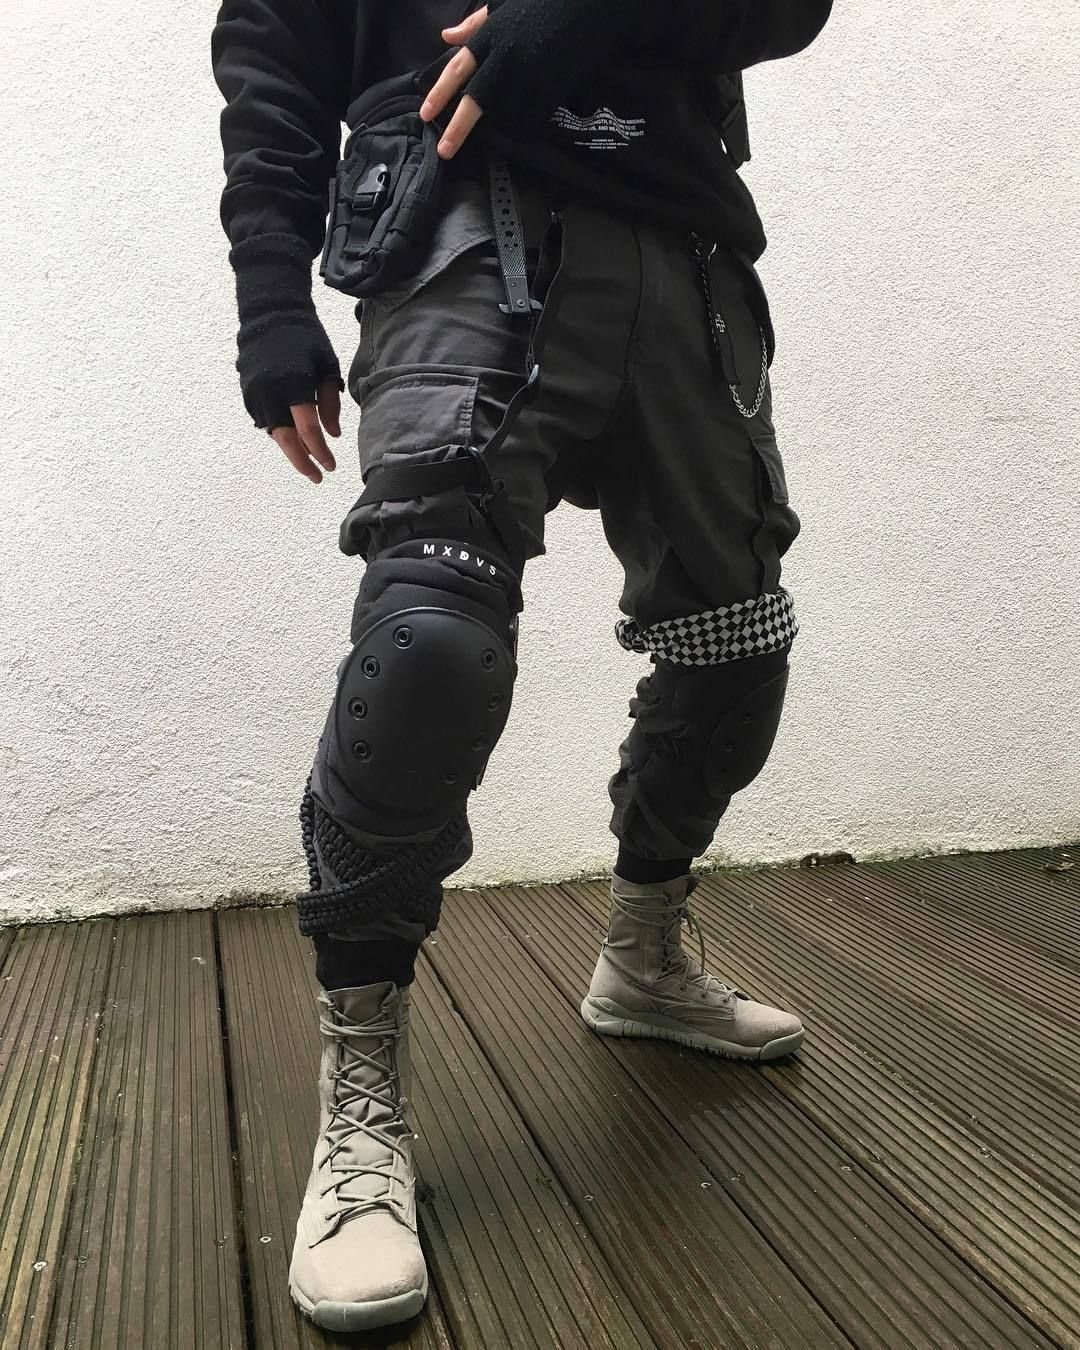 Mxdvs Cargo Pants Outfit By Max F S H N In 2018 Celana Manset Running Legging Go Pro Combat Tech